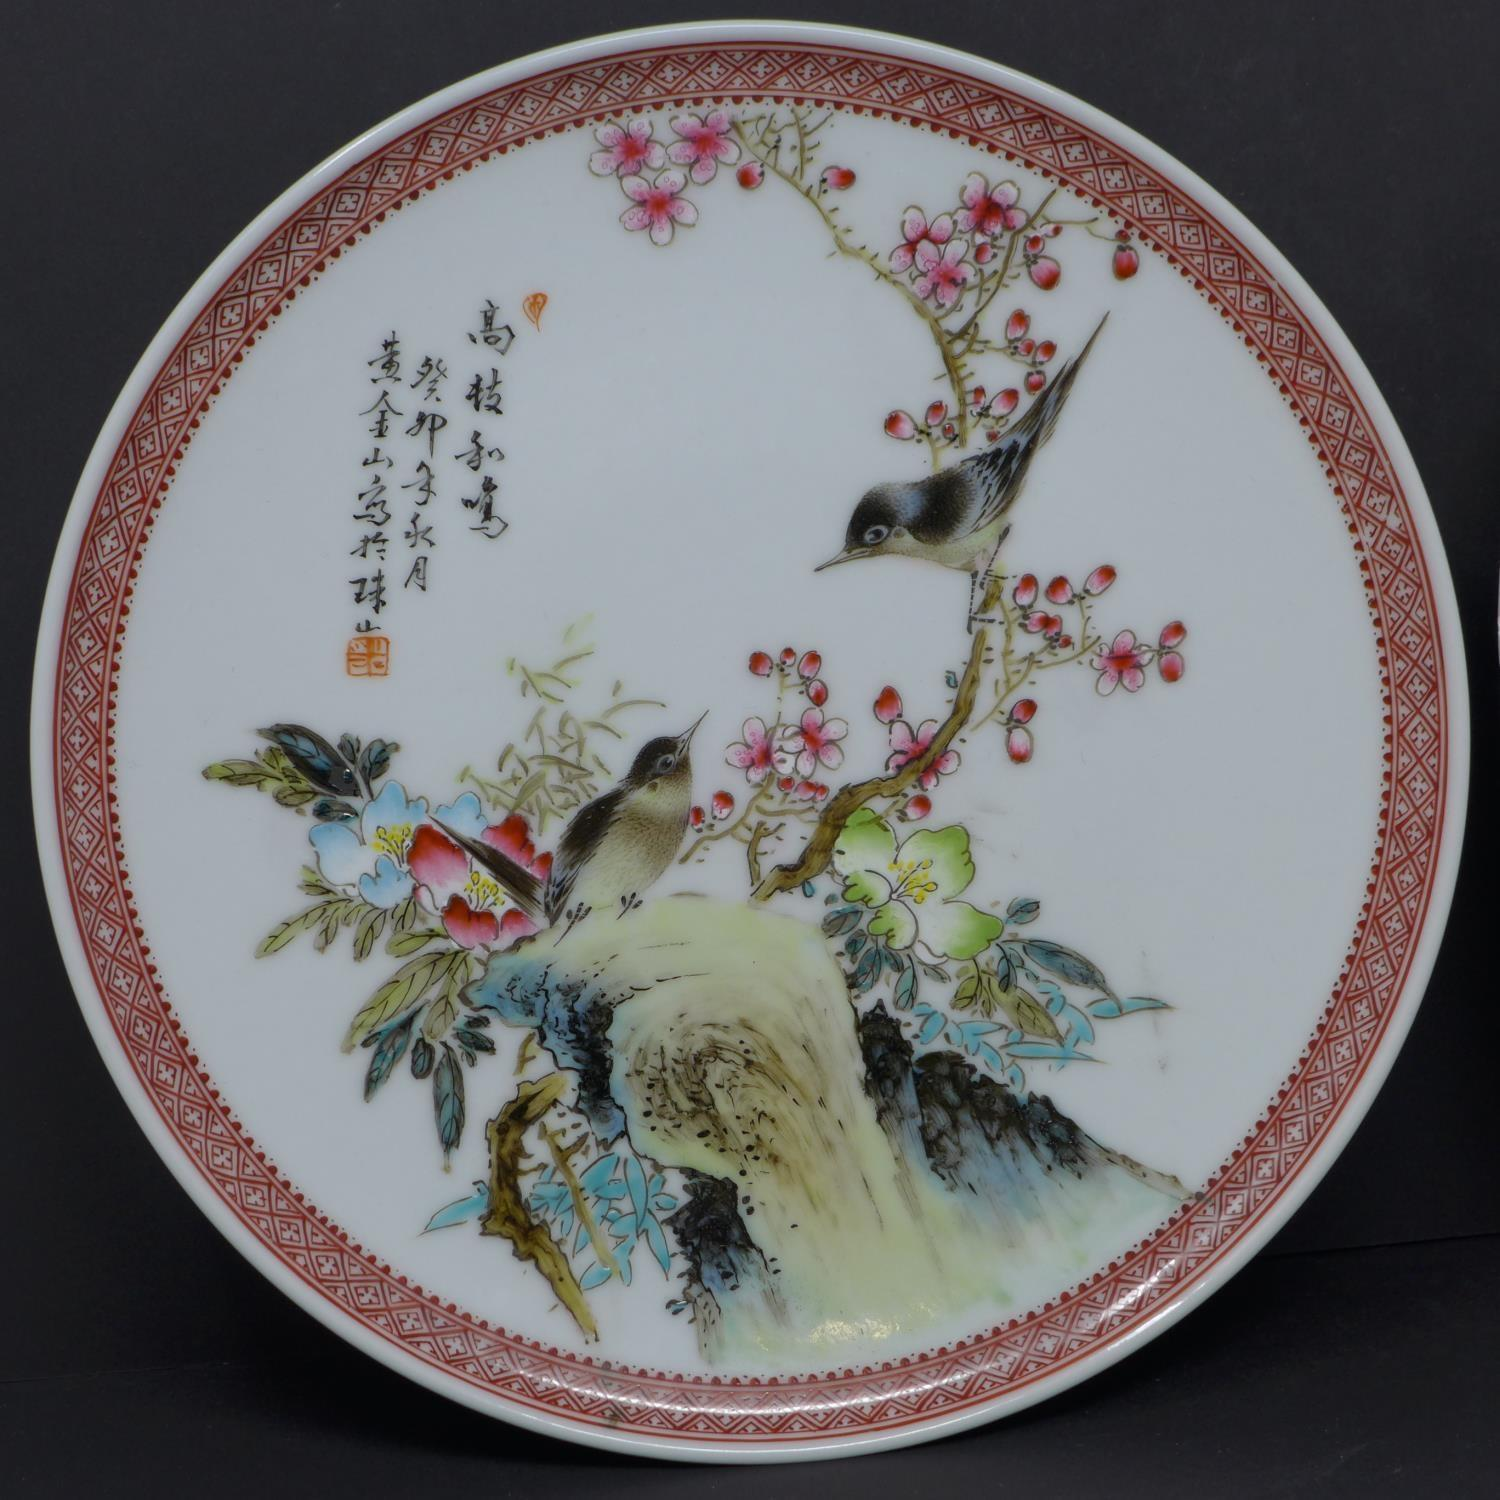 Lot 53 - WITHDRAWN- A pair of Chinese Republic porcelain dishes, decorated with birds, flowers and